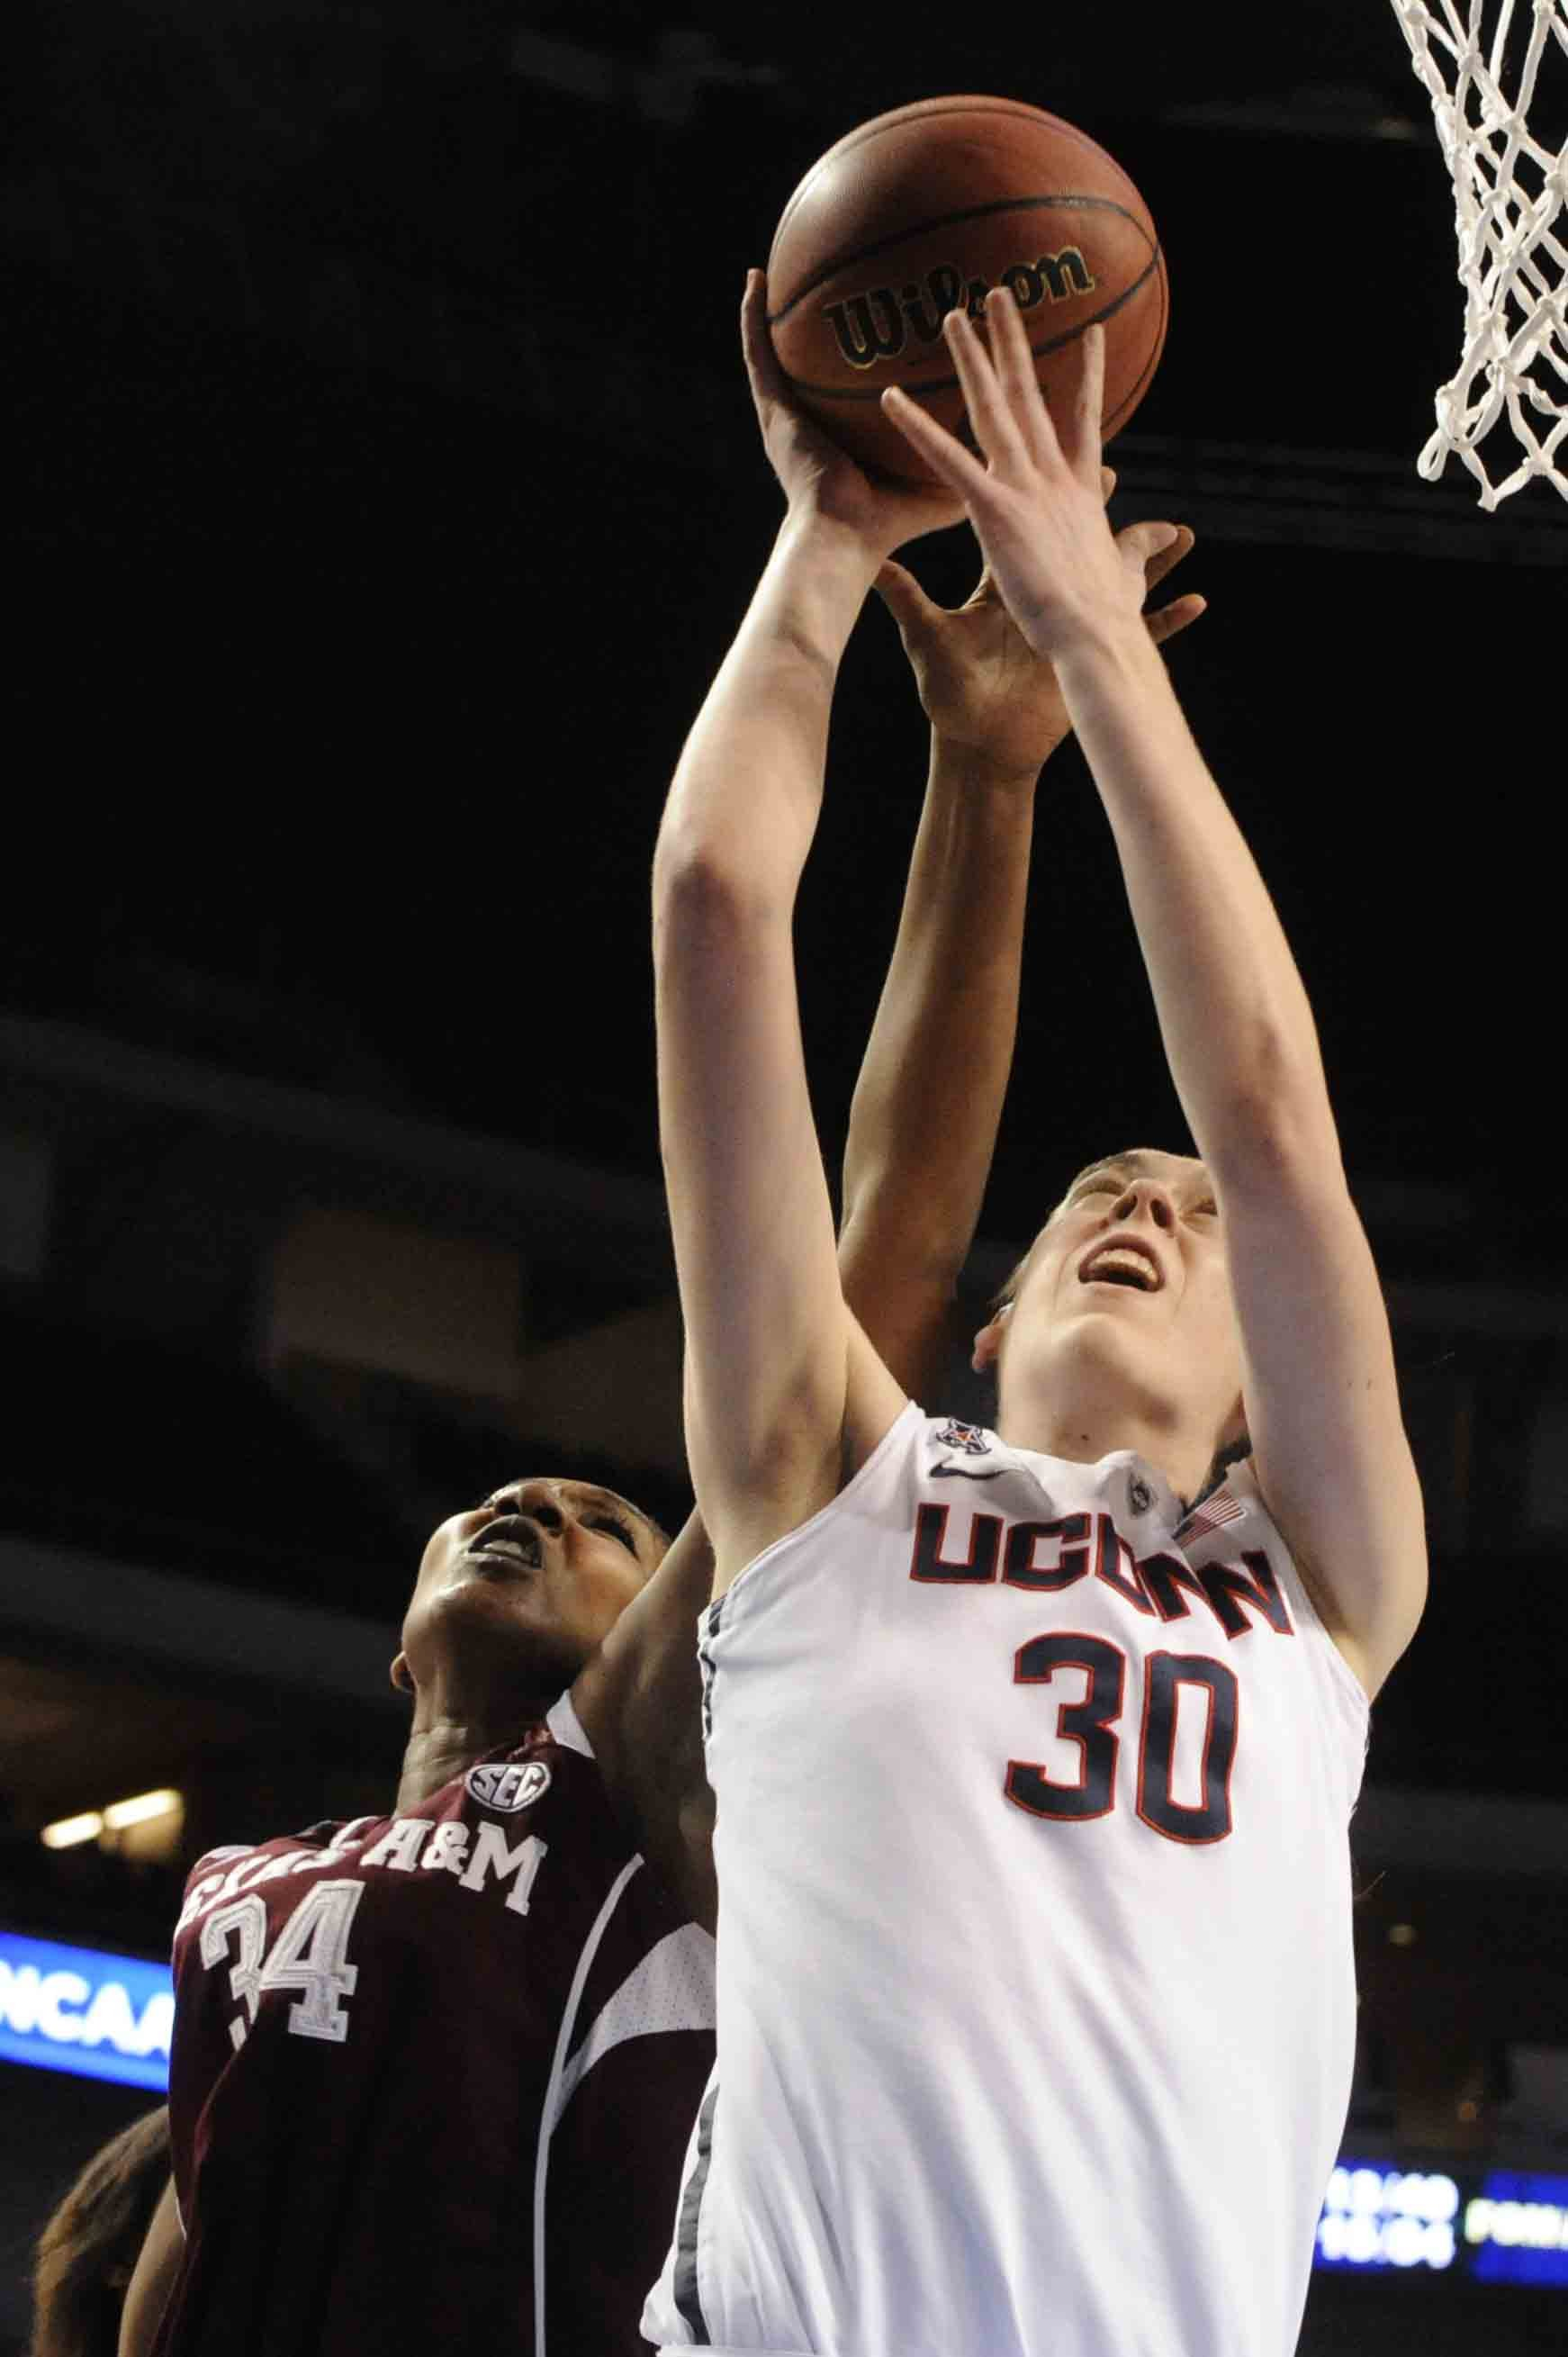 Connecticut's Breanna Stewart (30) takes a shot in front of Texas A&M's Karla Gilbert (34) during the second half of their Monday March 31, 2014 regional final in the NCAA college basketball tournament in Lincoln, Neb. (AP Photo/Dave Weaver)